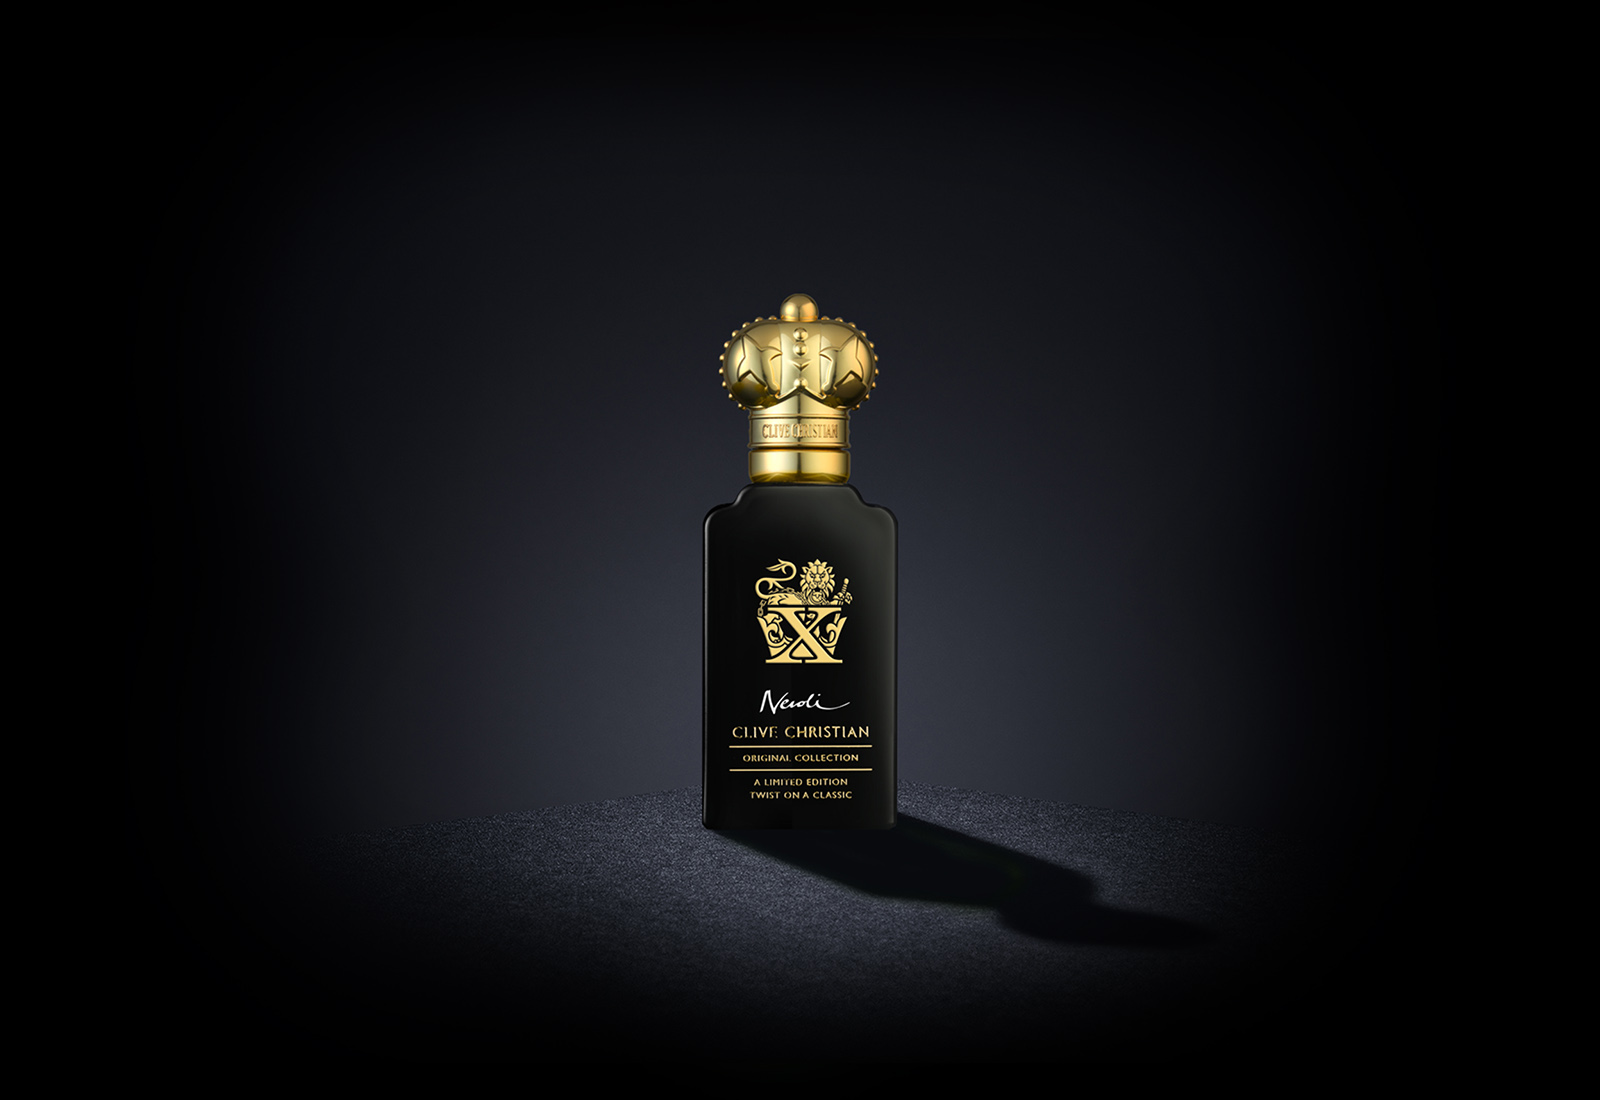 Clive Christian's luxury perfume, X Neroli Limited Edition, comes in a black bottle with a gold cap